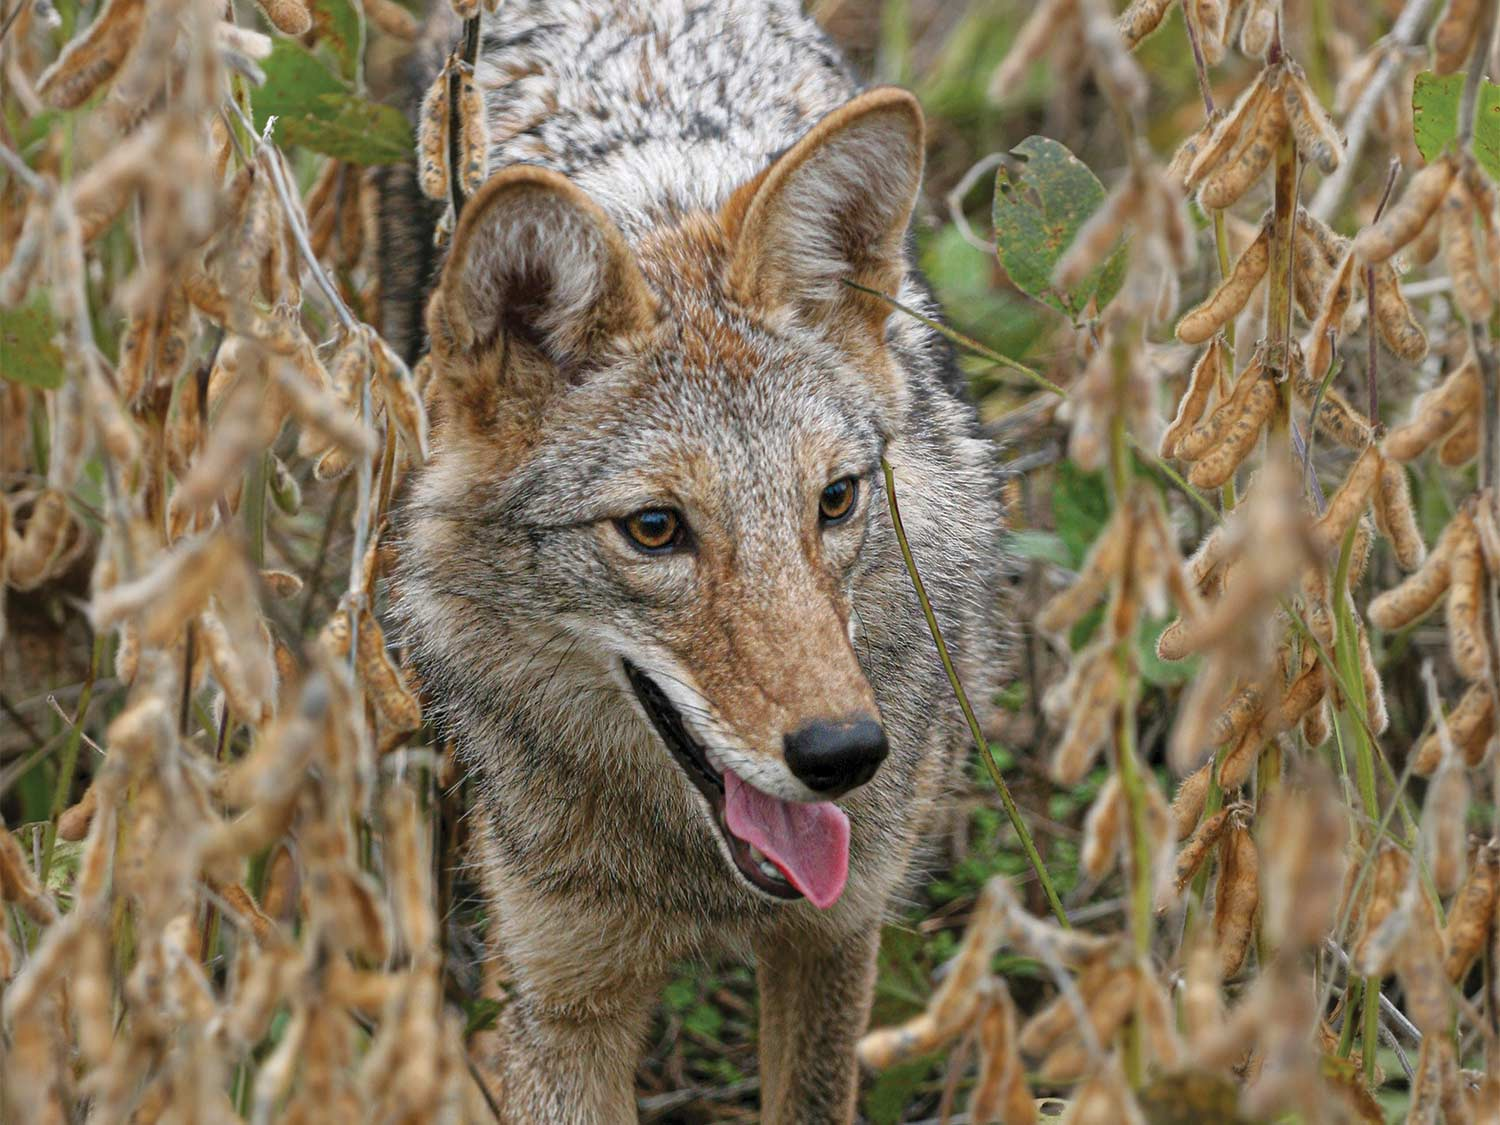 An Ohio coyote slides through standing soybeans.